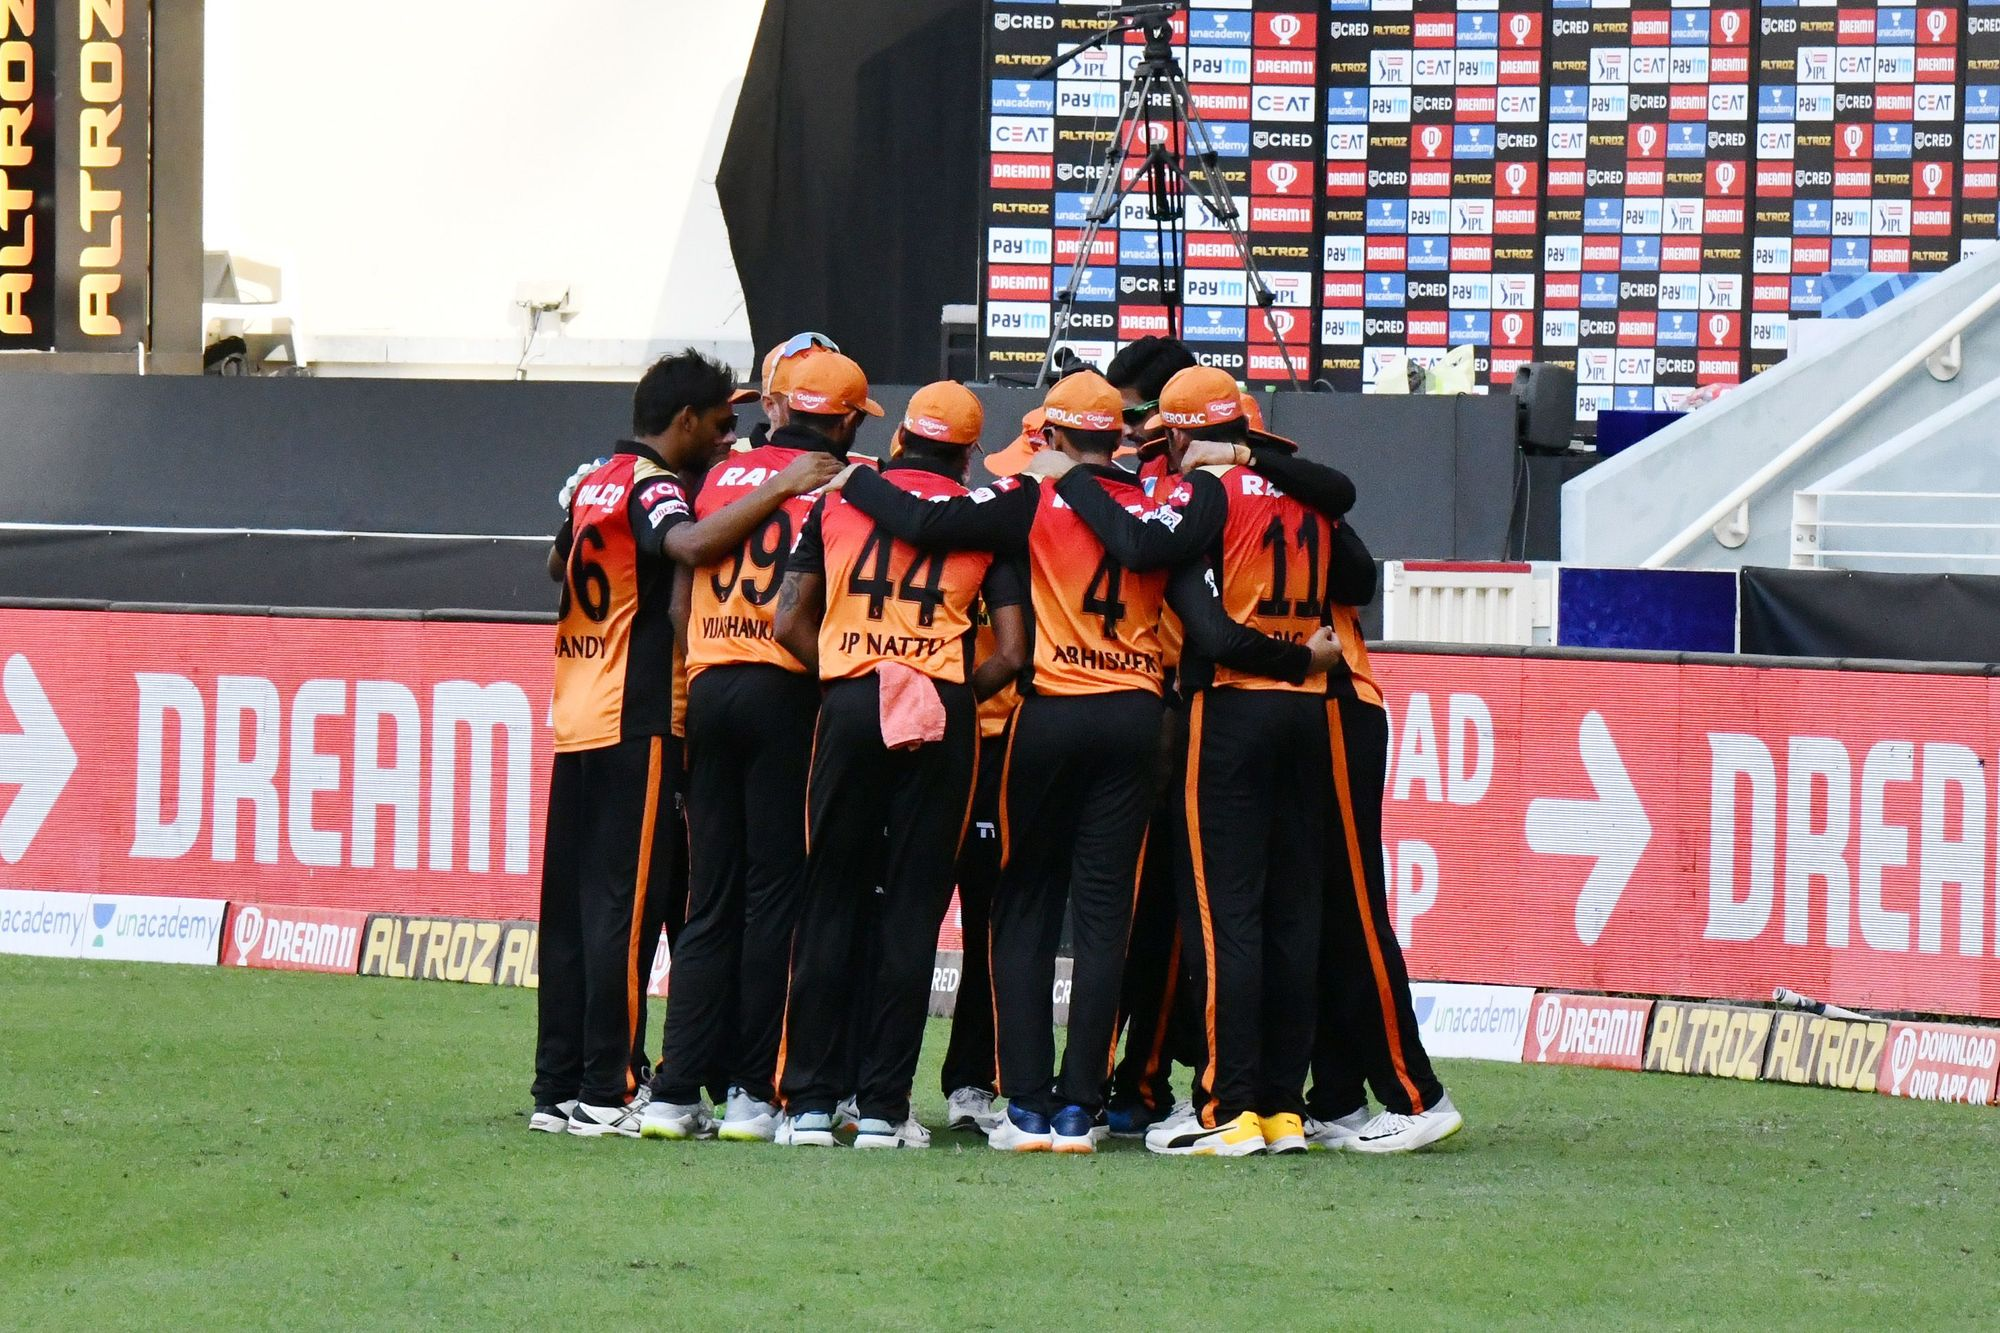 SRH suffered its fourth loss to RR in the IPL 2020 on Sunday | SRH Twitter